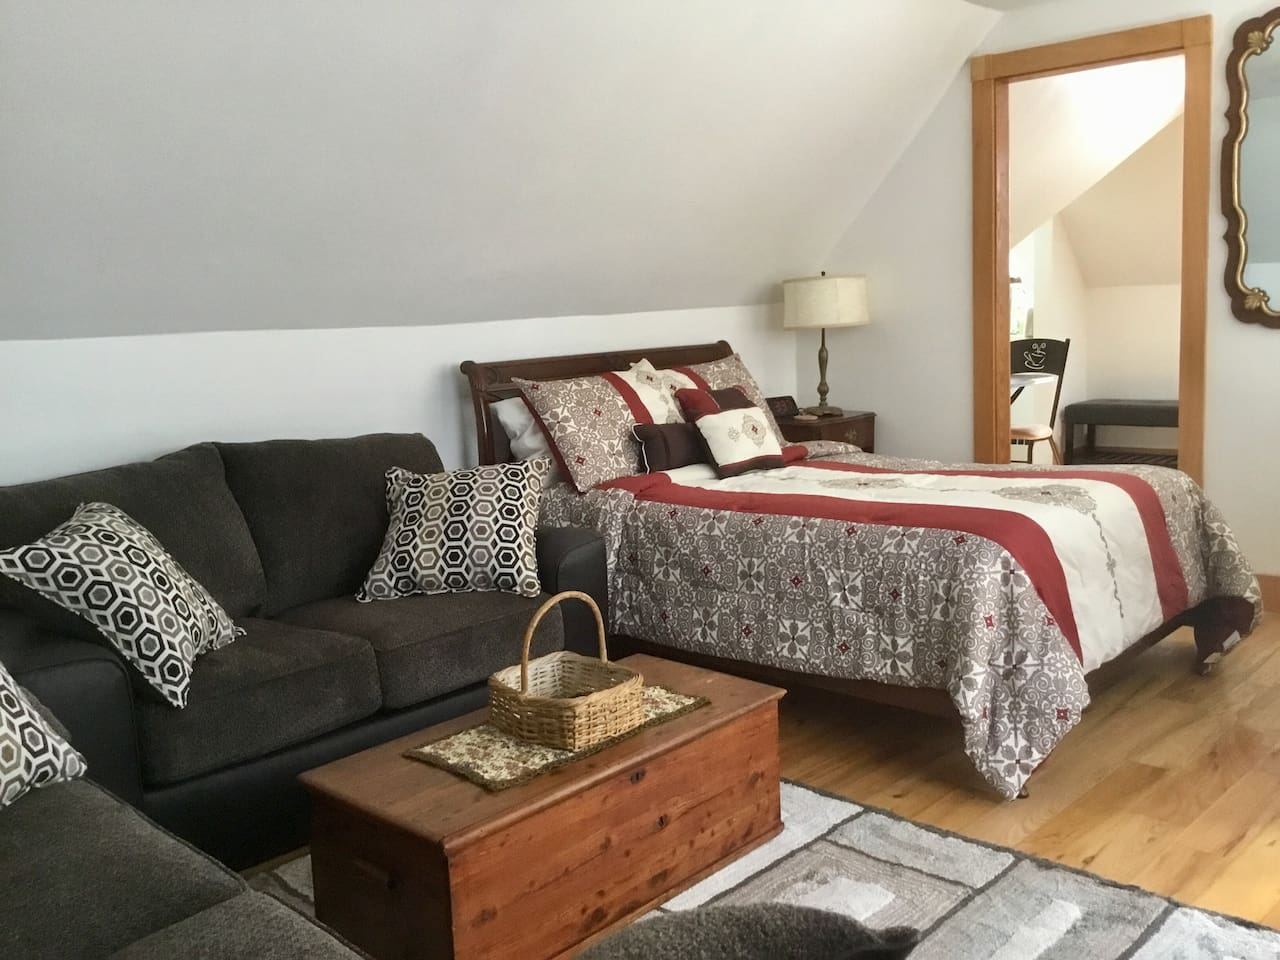 Enjoy your own sweet suite (living room/bedroom combo, kitchenette, and private bath) located in  historic WECAN neighborhood central to Downtown, the River Arts District, South Slope, and hip West Asheville.